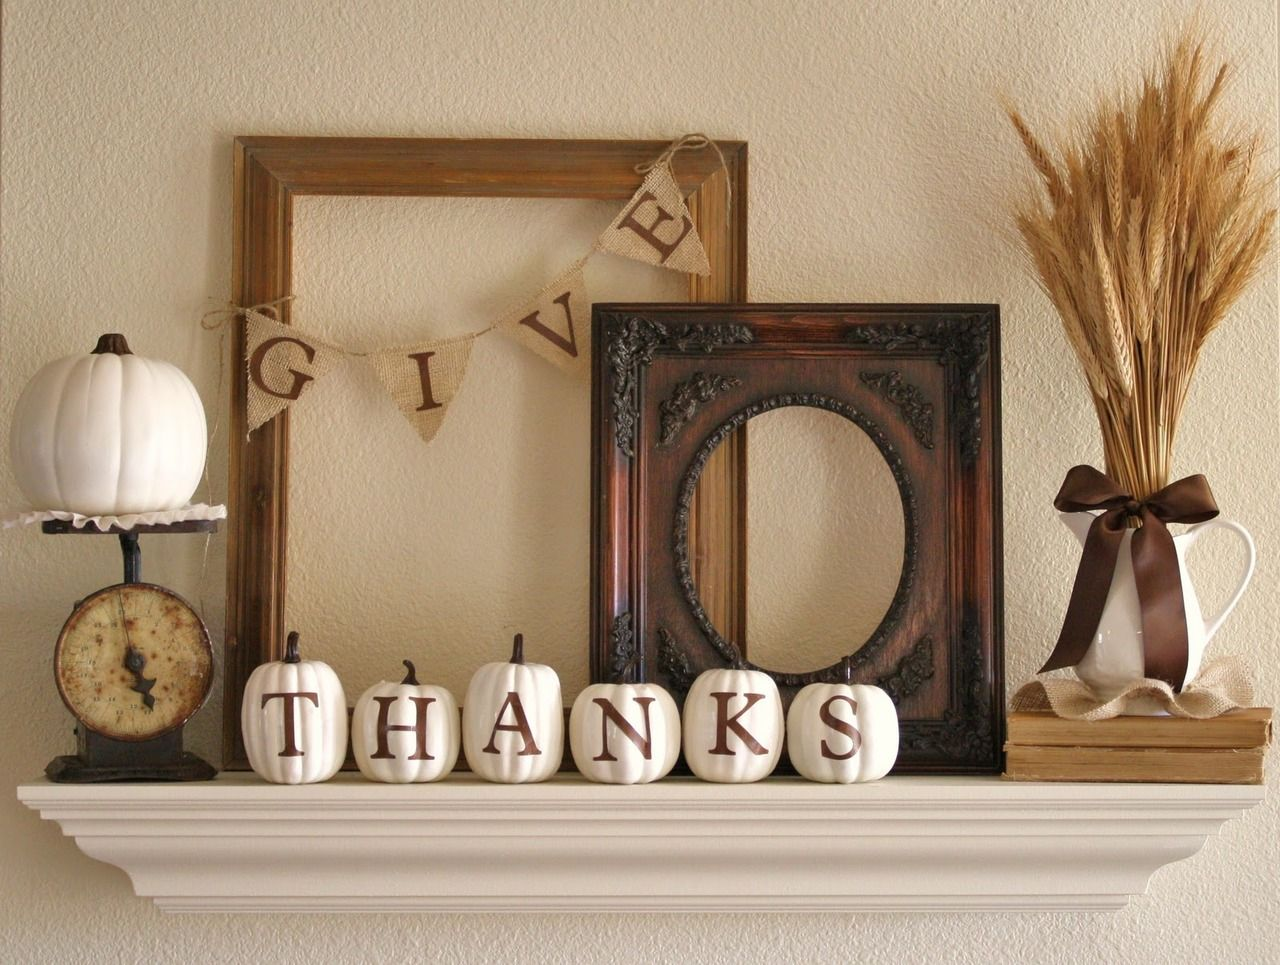 Thanksgiving decor mantle - Check Out These 18 Inspiring And Fun Fall Mantel Ideas To Get Your Home In The Spirit Of The Season Cute Thanksgiving Mantle Decor